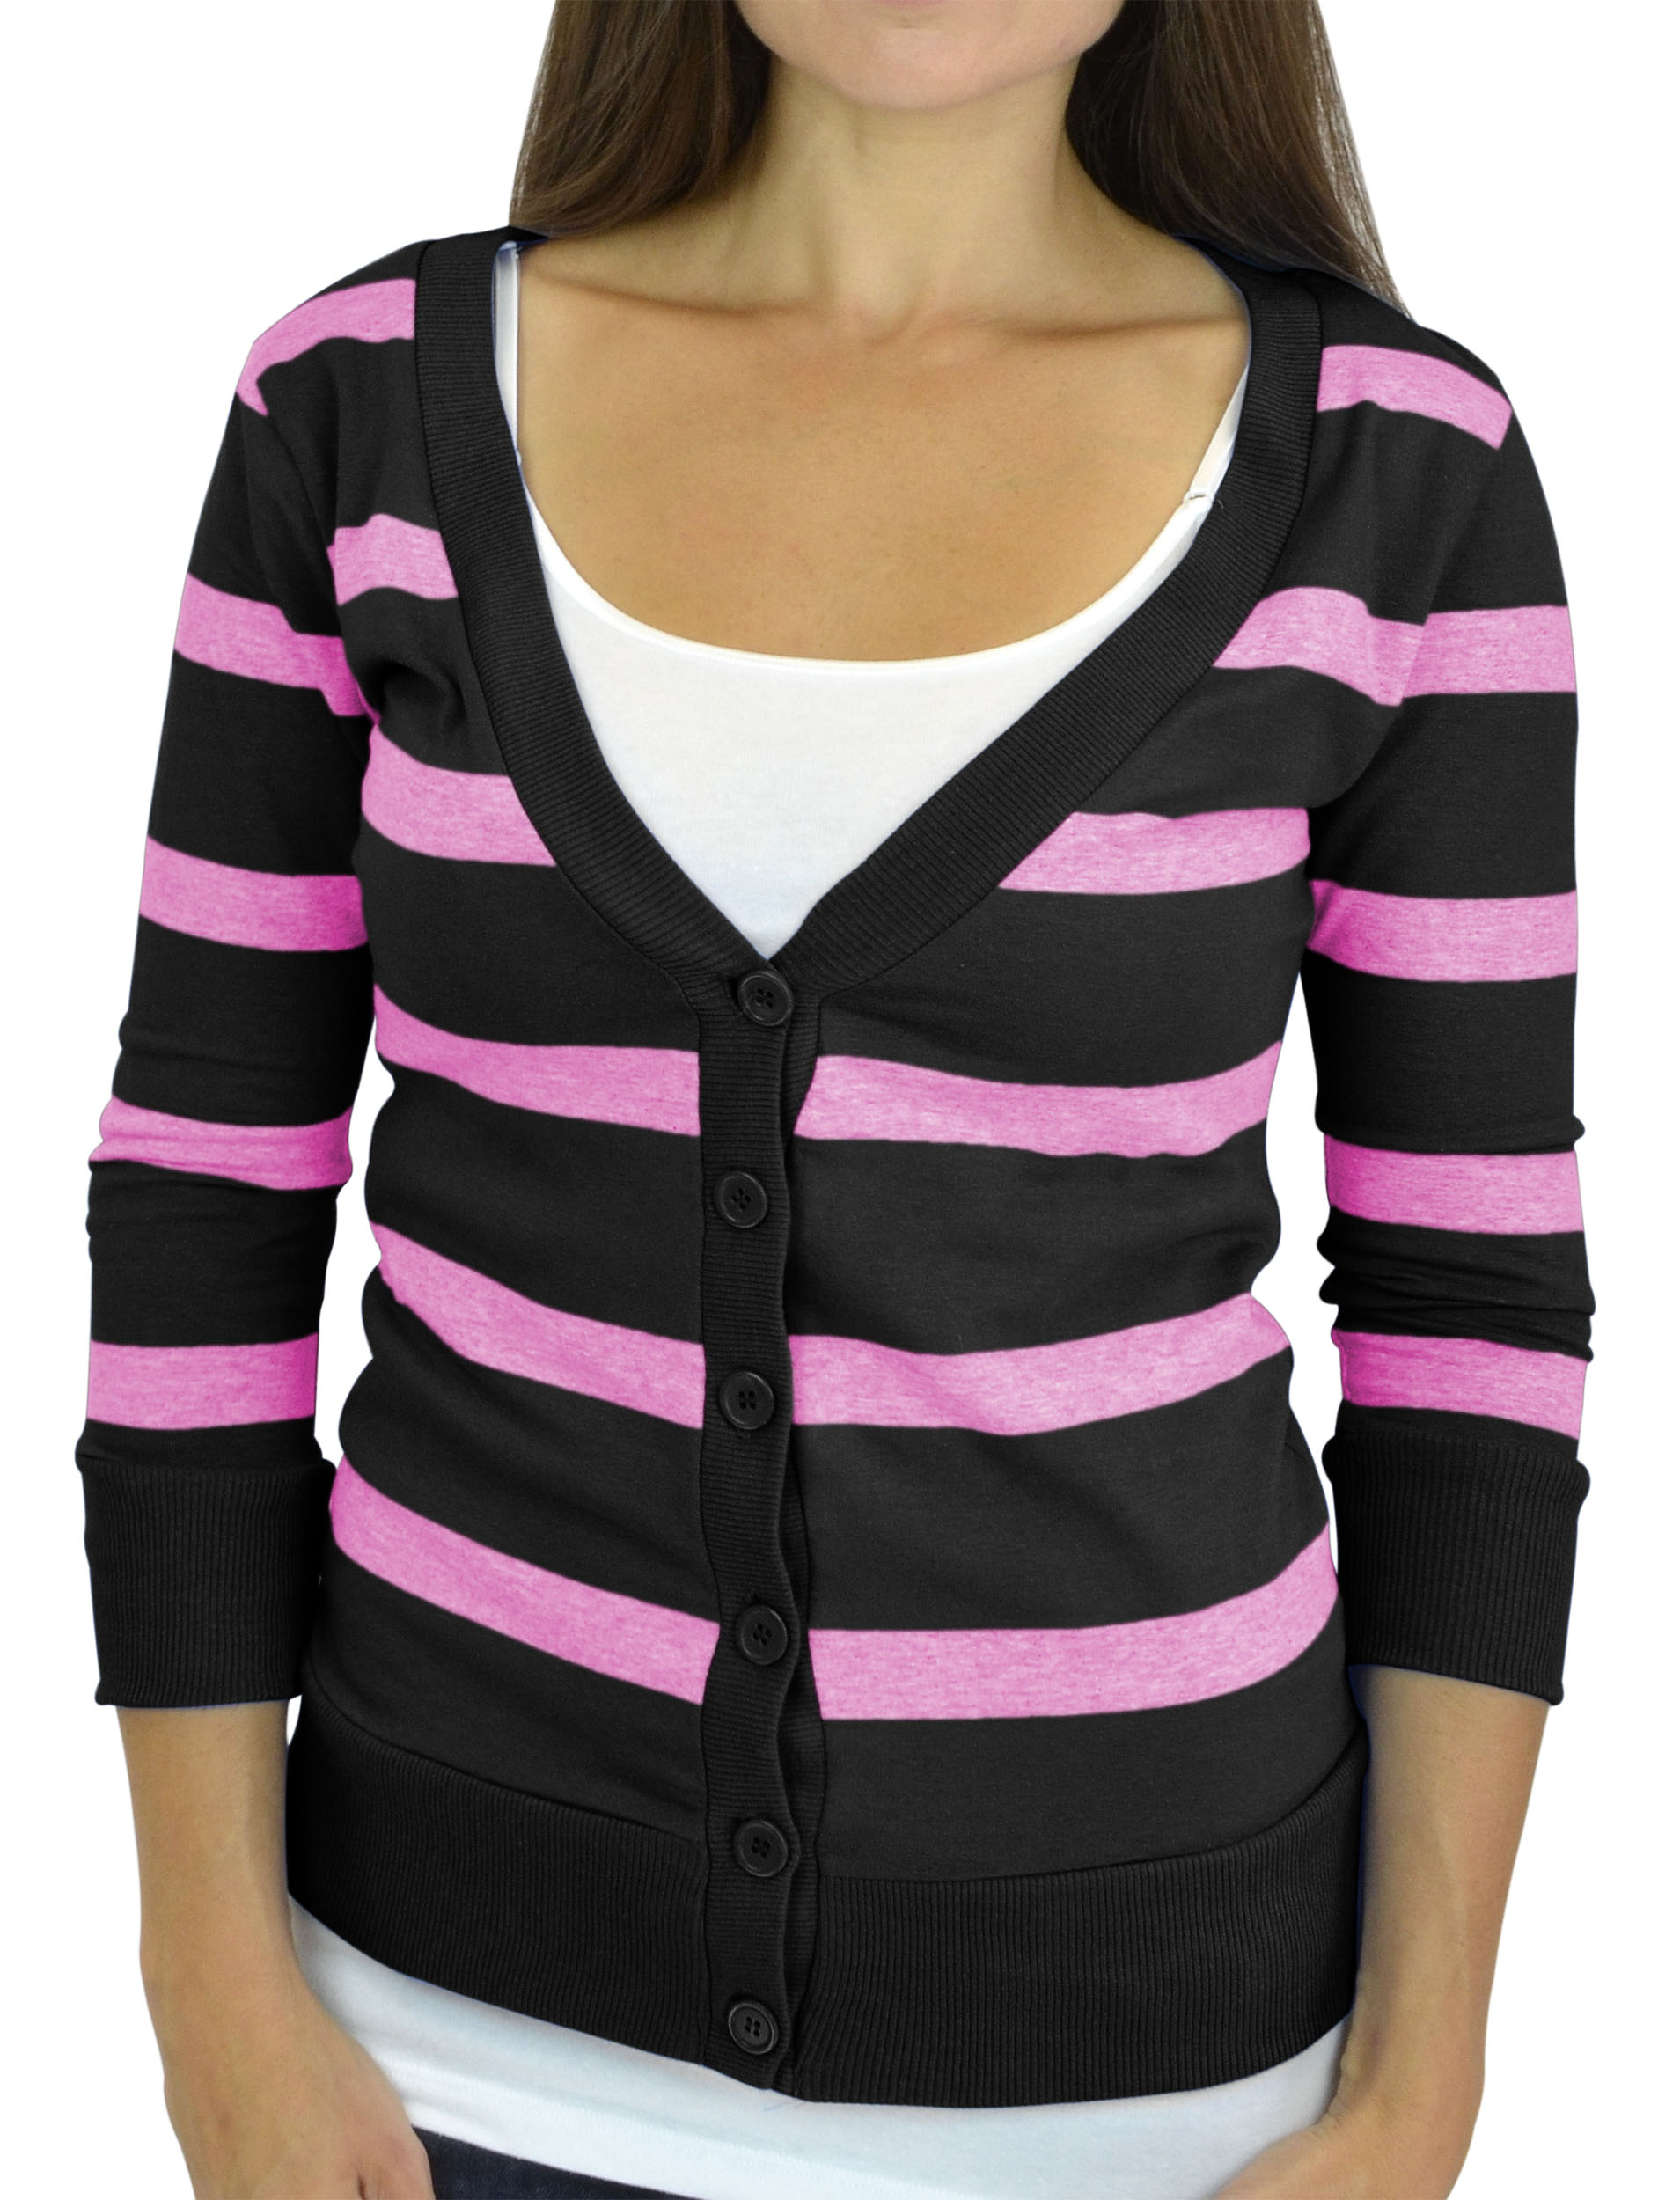 Belle Donne - Women / Girl Junior Size Soft 3/4 Sleeve V-Neck Sweater Cardigans - Black/Large